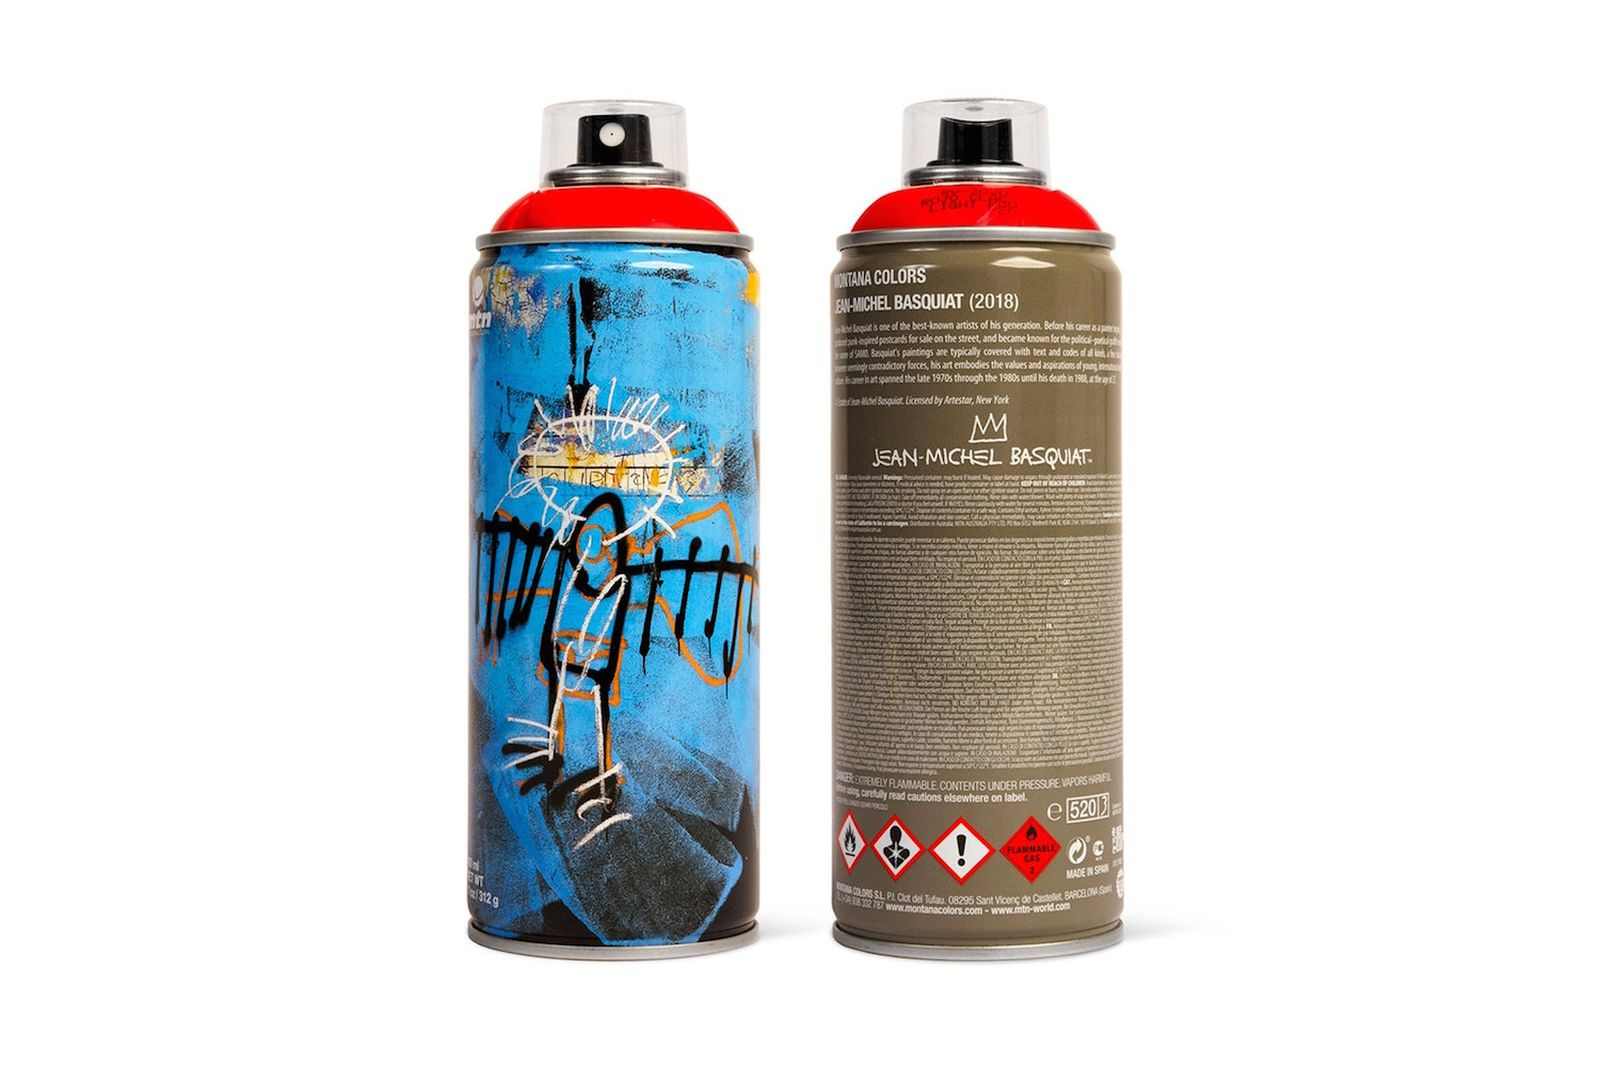 jean-michel-basquiat-keith-haring-spray-paint-cans-02